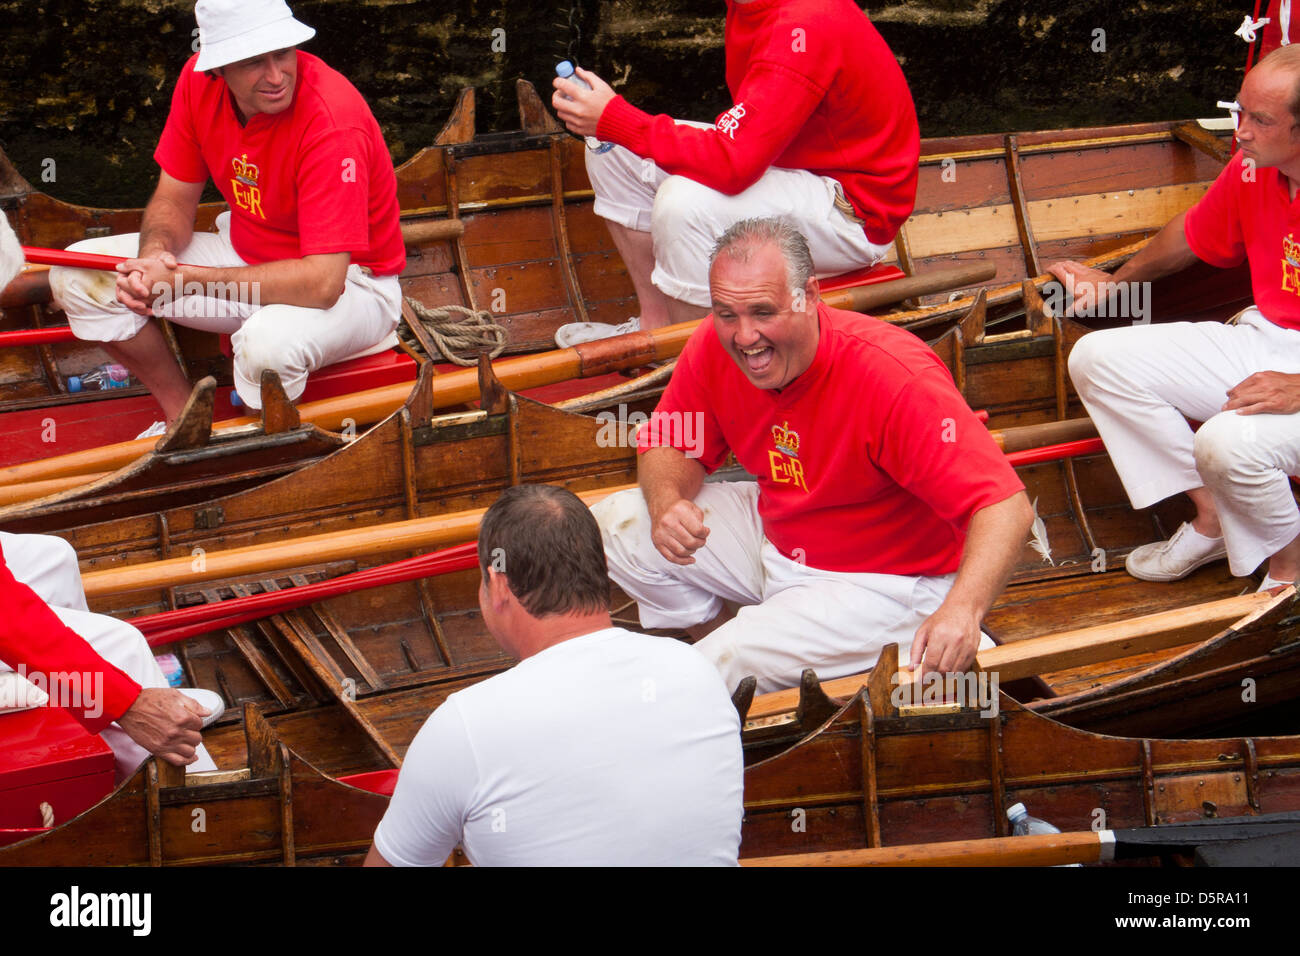 Members of The Queen's Swan Uppers share a joke while performing the annual swan upping ceremony along the river - Stock Image